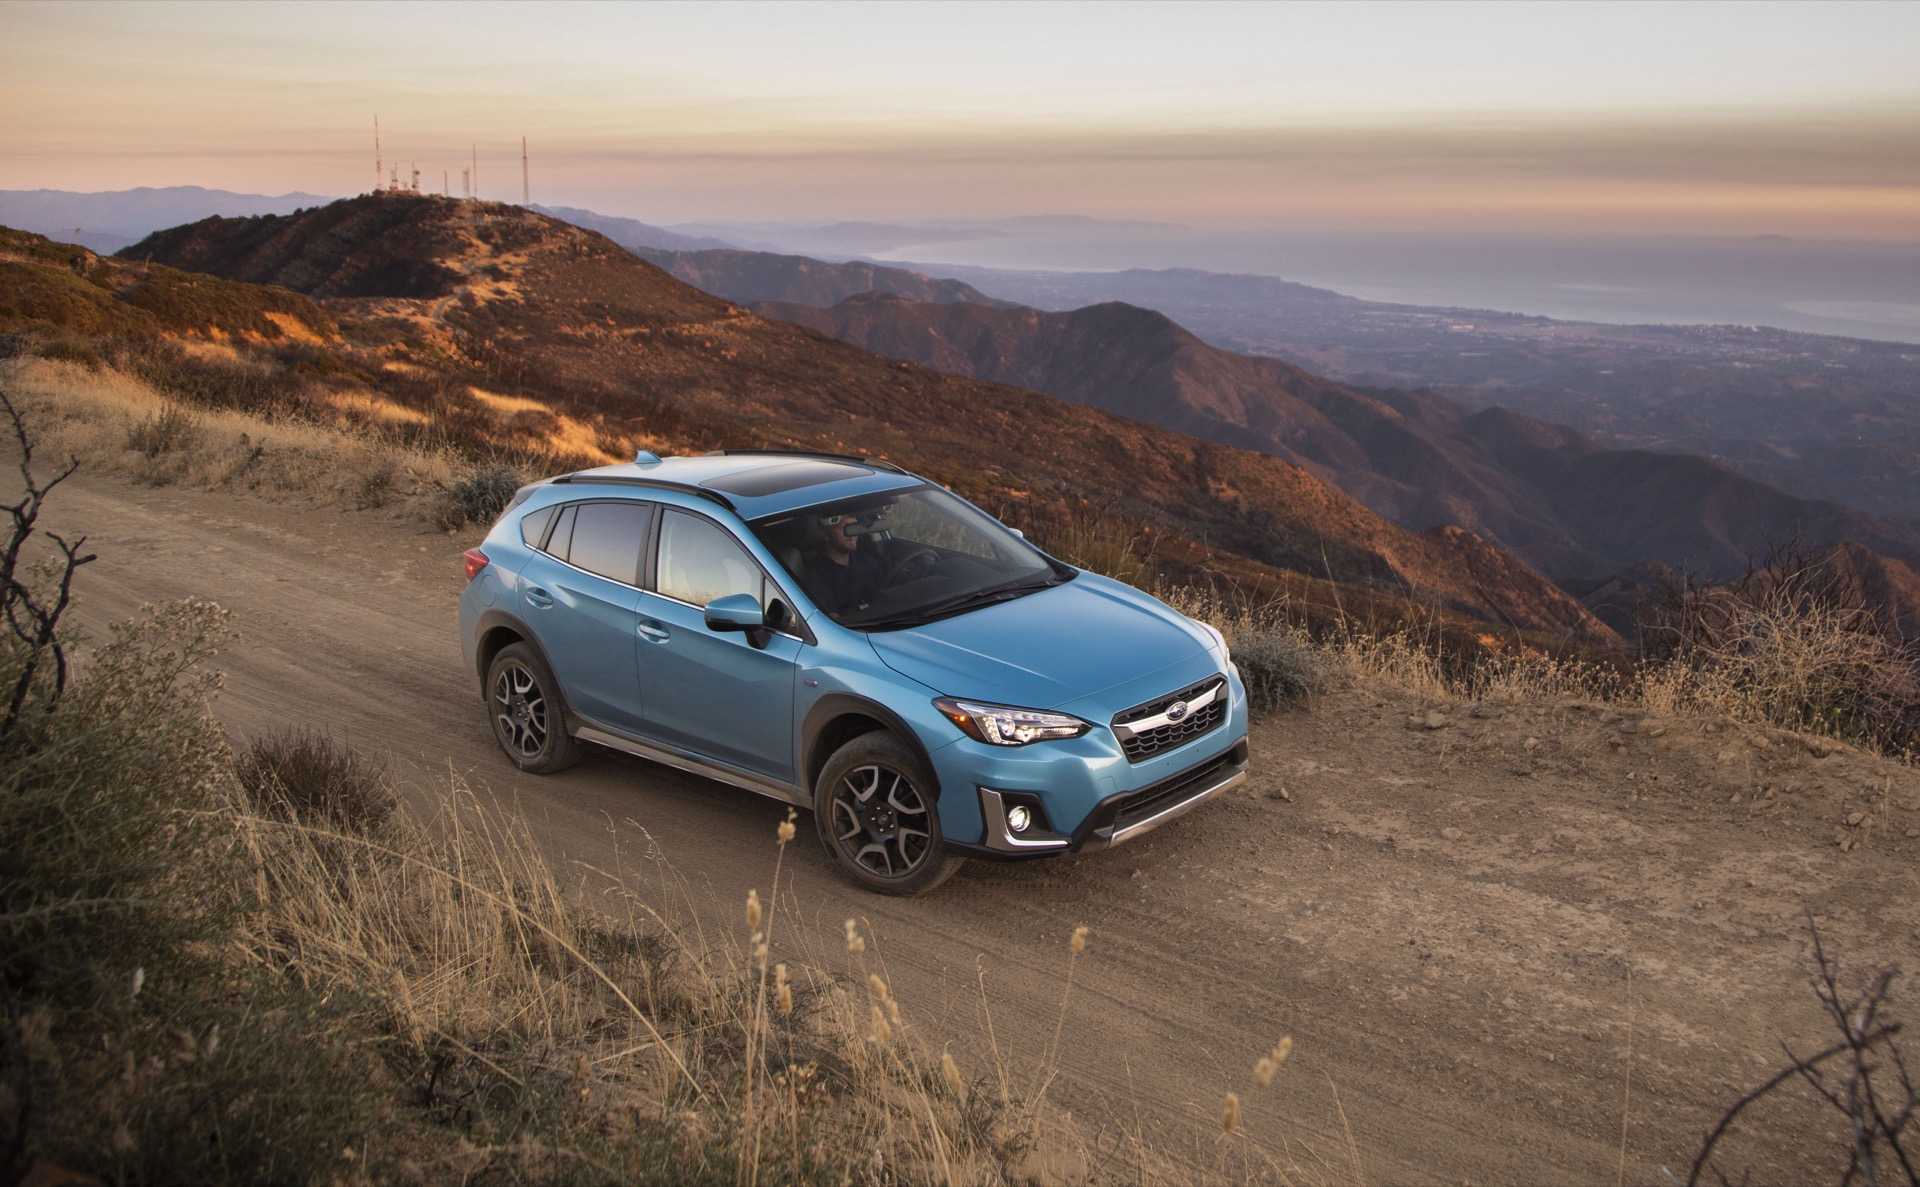 2019 Subaru Crosstrek Hybrid First Drive Of 17 Mile 35 Mpg Plug In Crossover